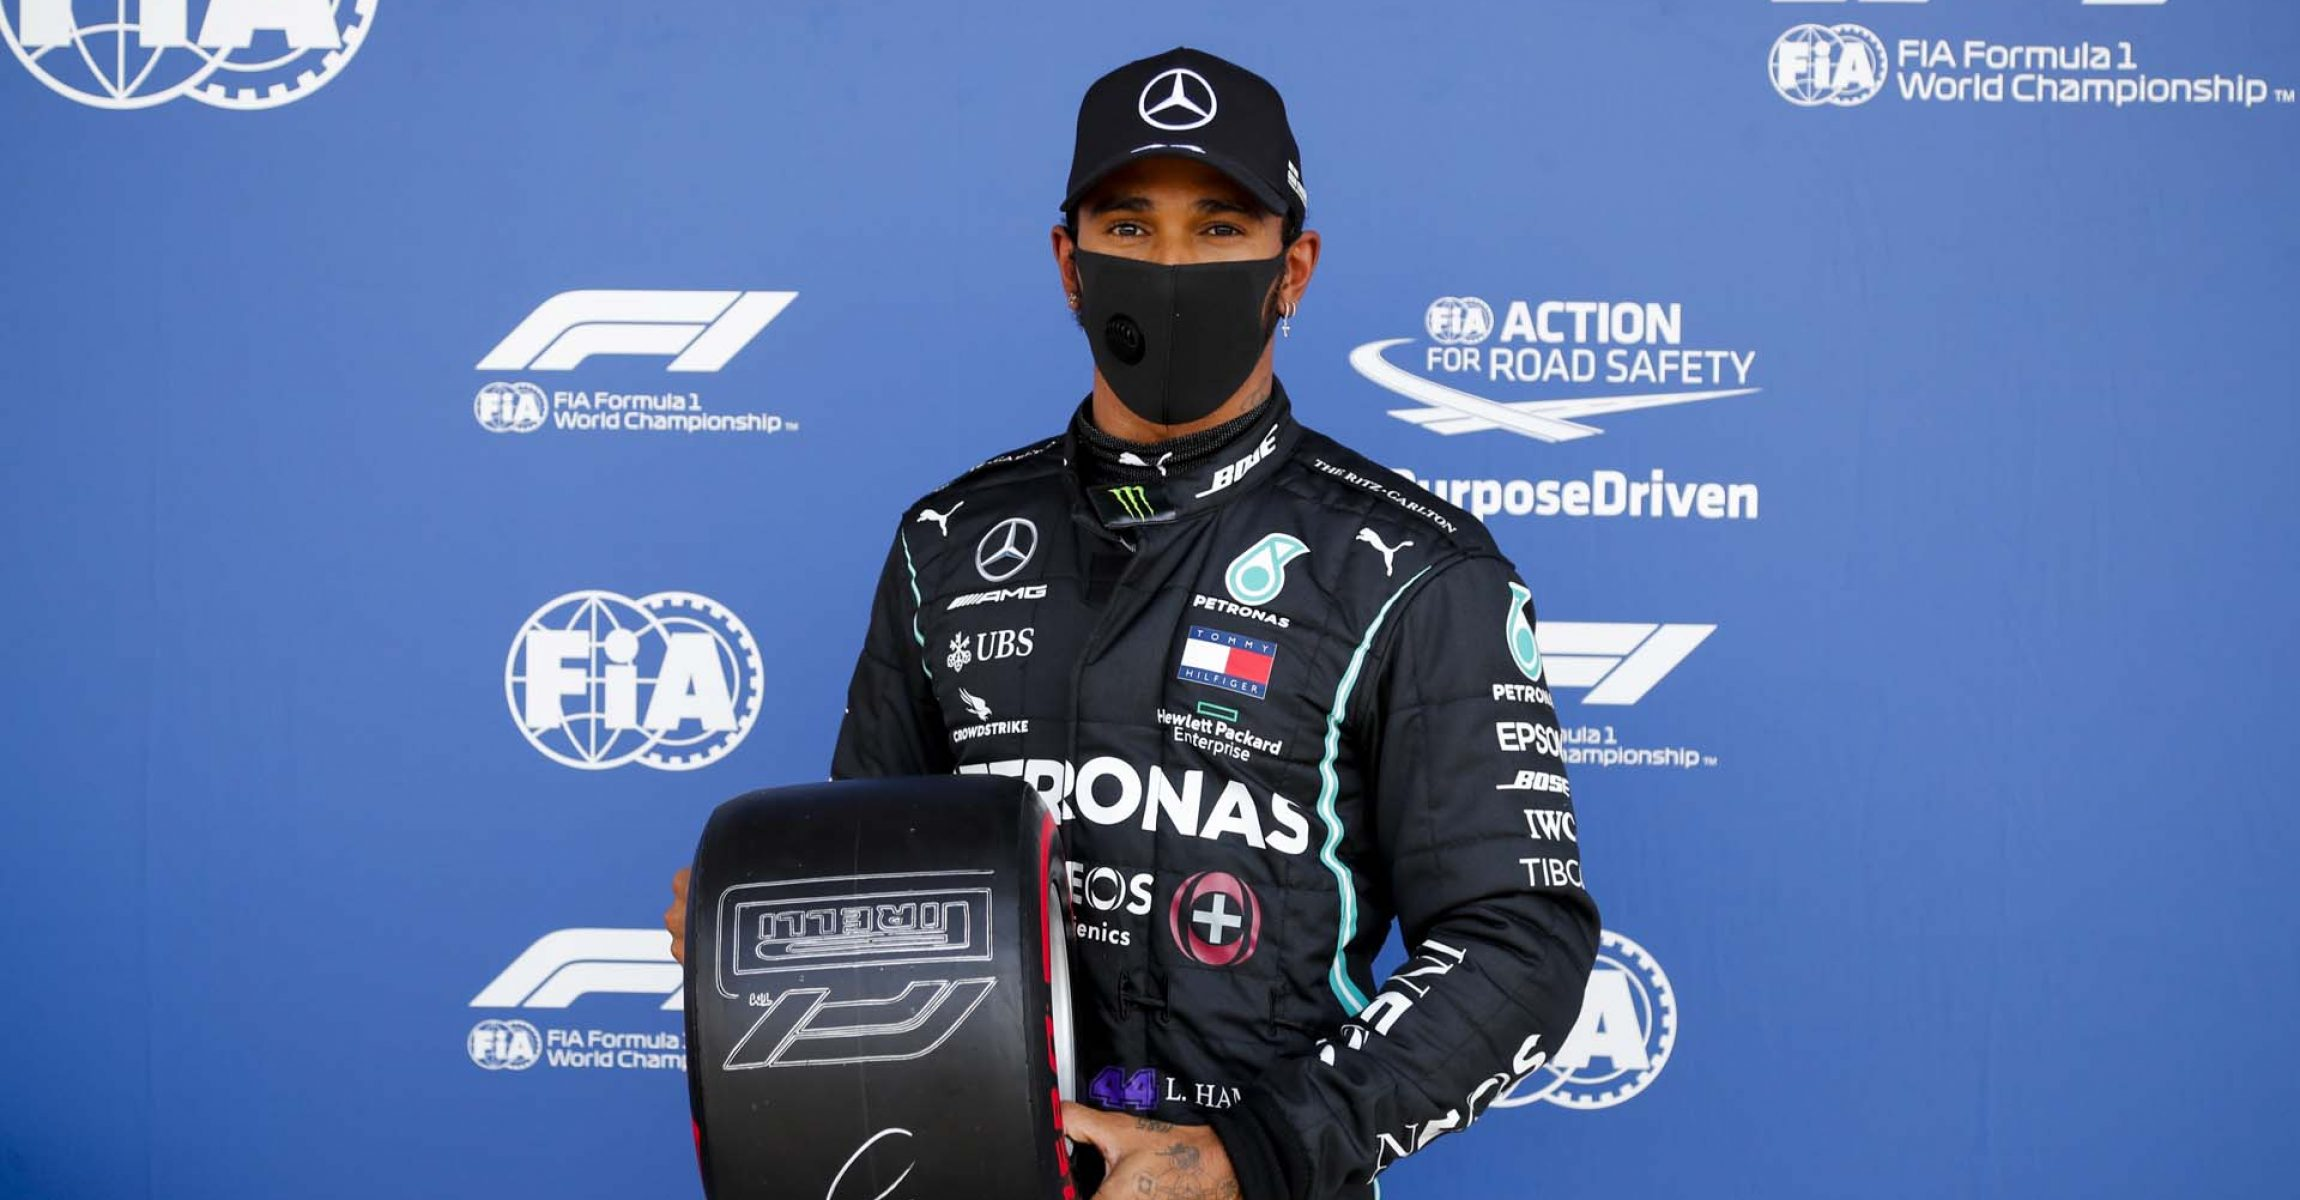 SILVERSTONE, UNITED KINGDOM - AUGUST 01: Pole Sitter Lewis Hamilton, Mercedes-AMG Petronas F1 with the Pirelli Pole Position Award during the British GP at Silverstone on Saturday August 01, 2020 in Northamptonshire, United Kingdom. (Photo by Steven Tee / LAT Images)